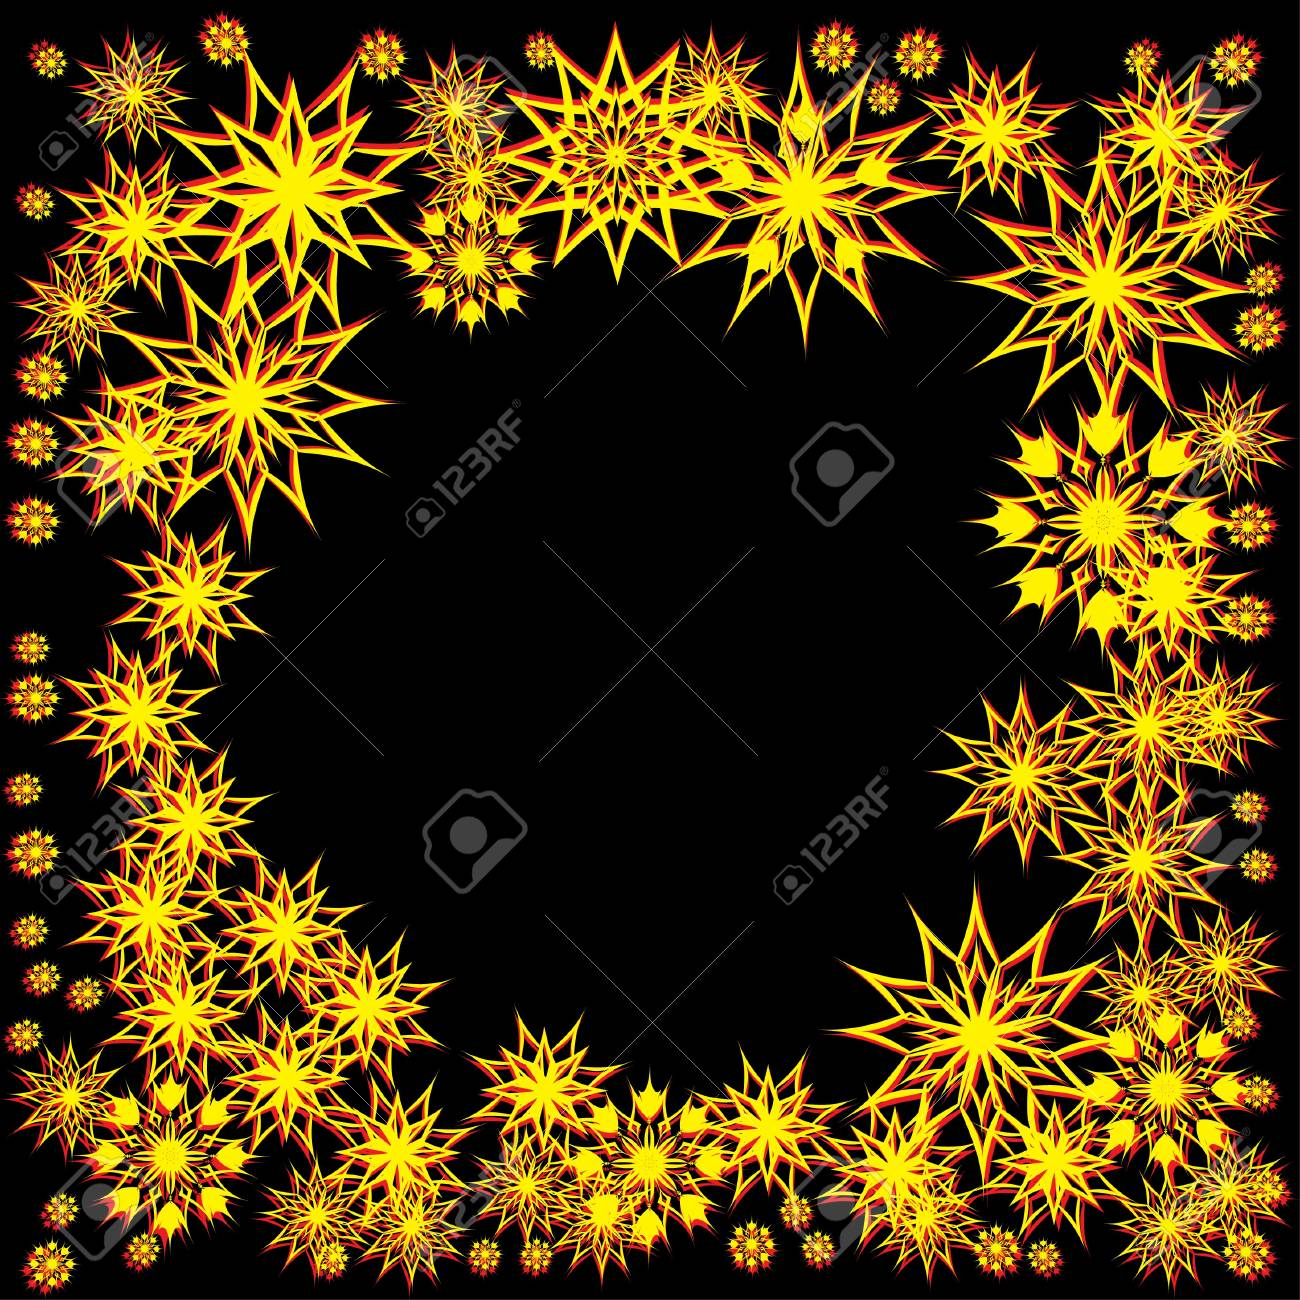 floral winter frame with snowflakes. illustration. Stock Vector - 11099387